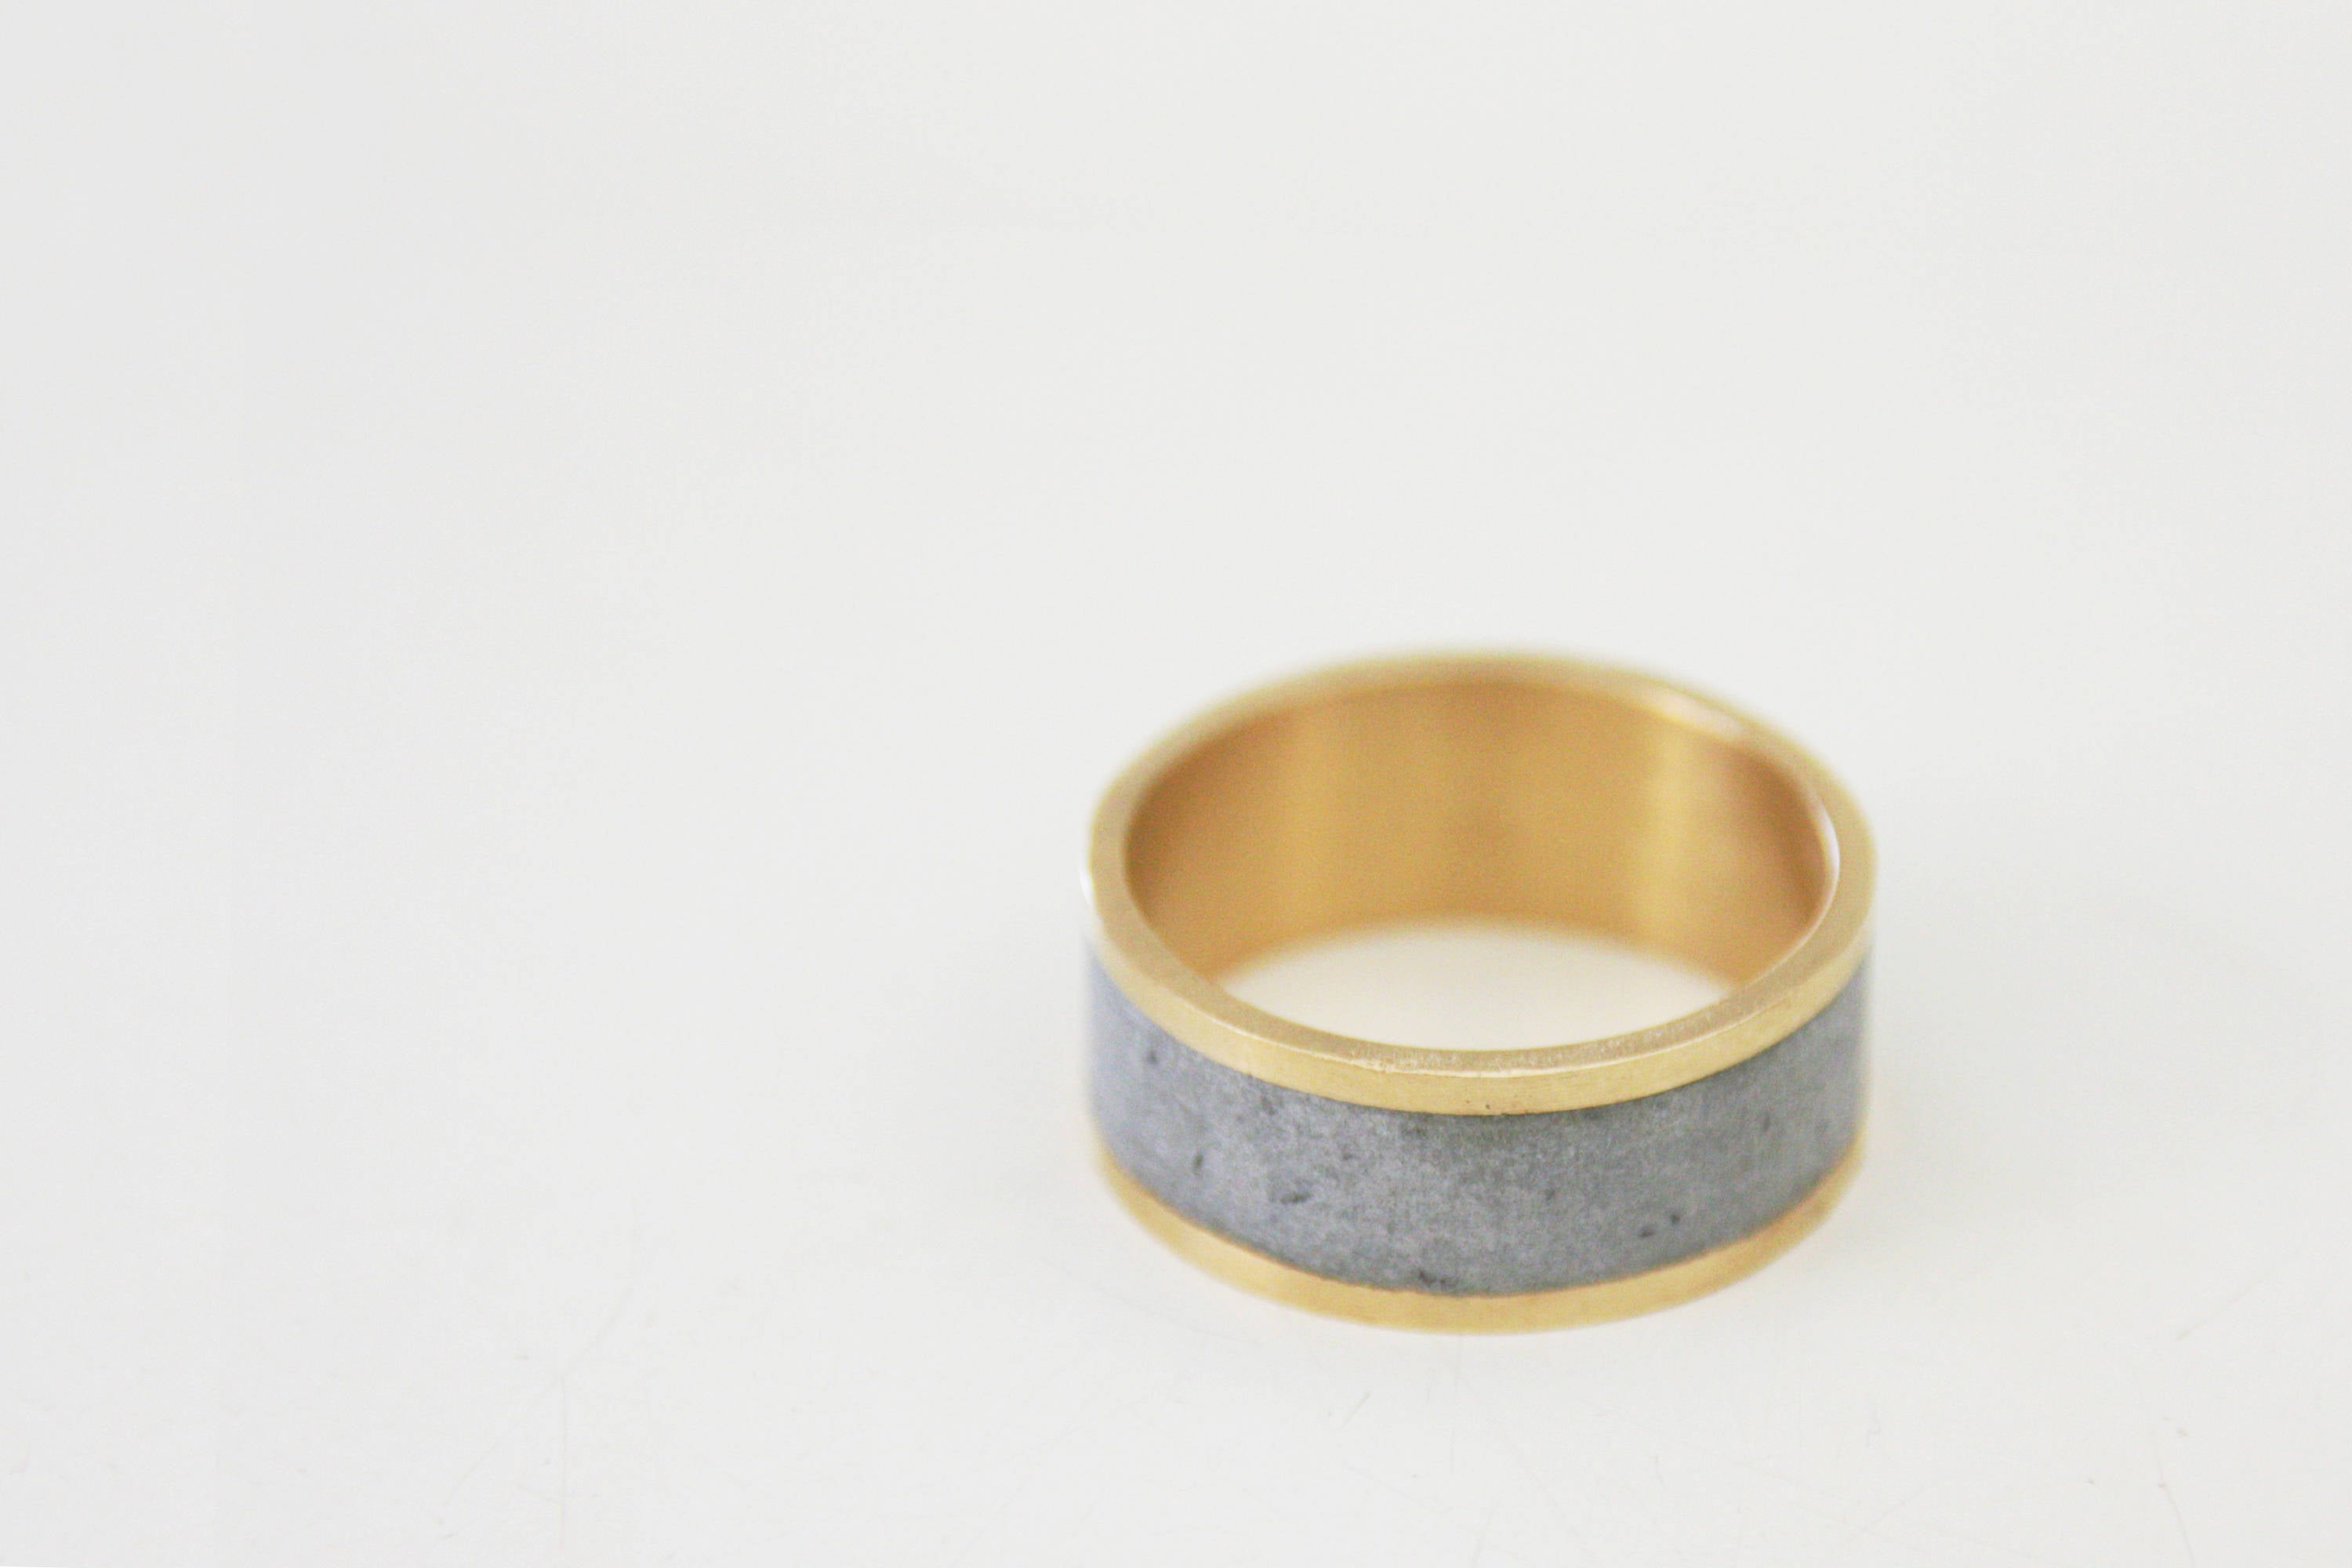 14K Yellow Gold And Concrete Wedding Ring / Wide Gold Wedding Band / Unisex Wedding Ring - hs